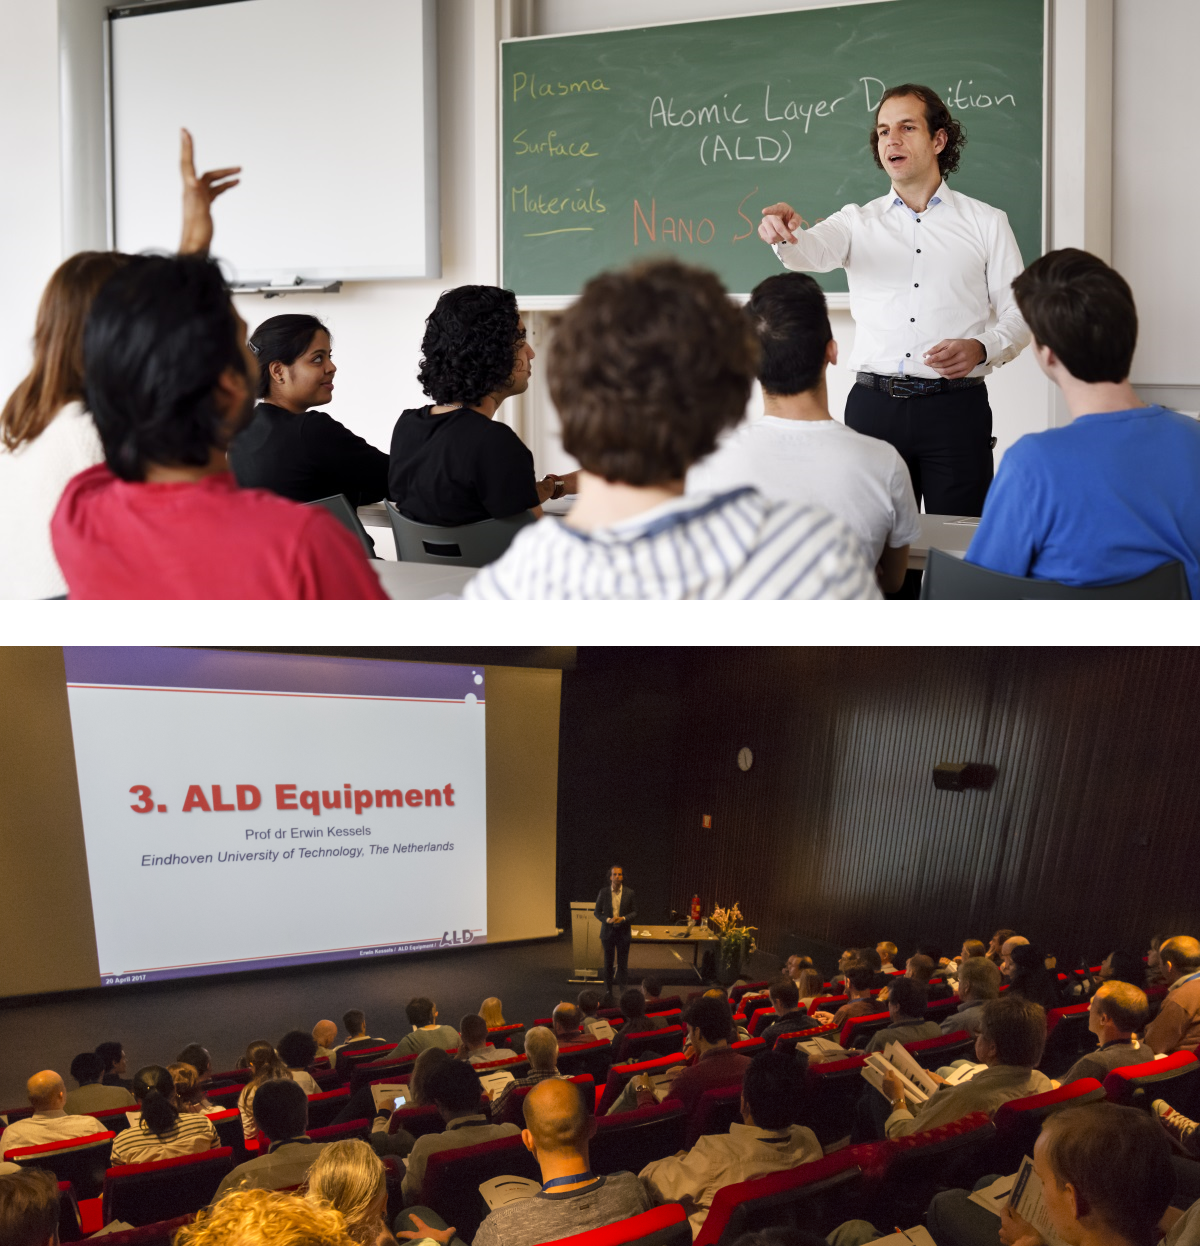 About ALD Academy